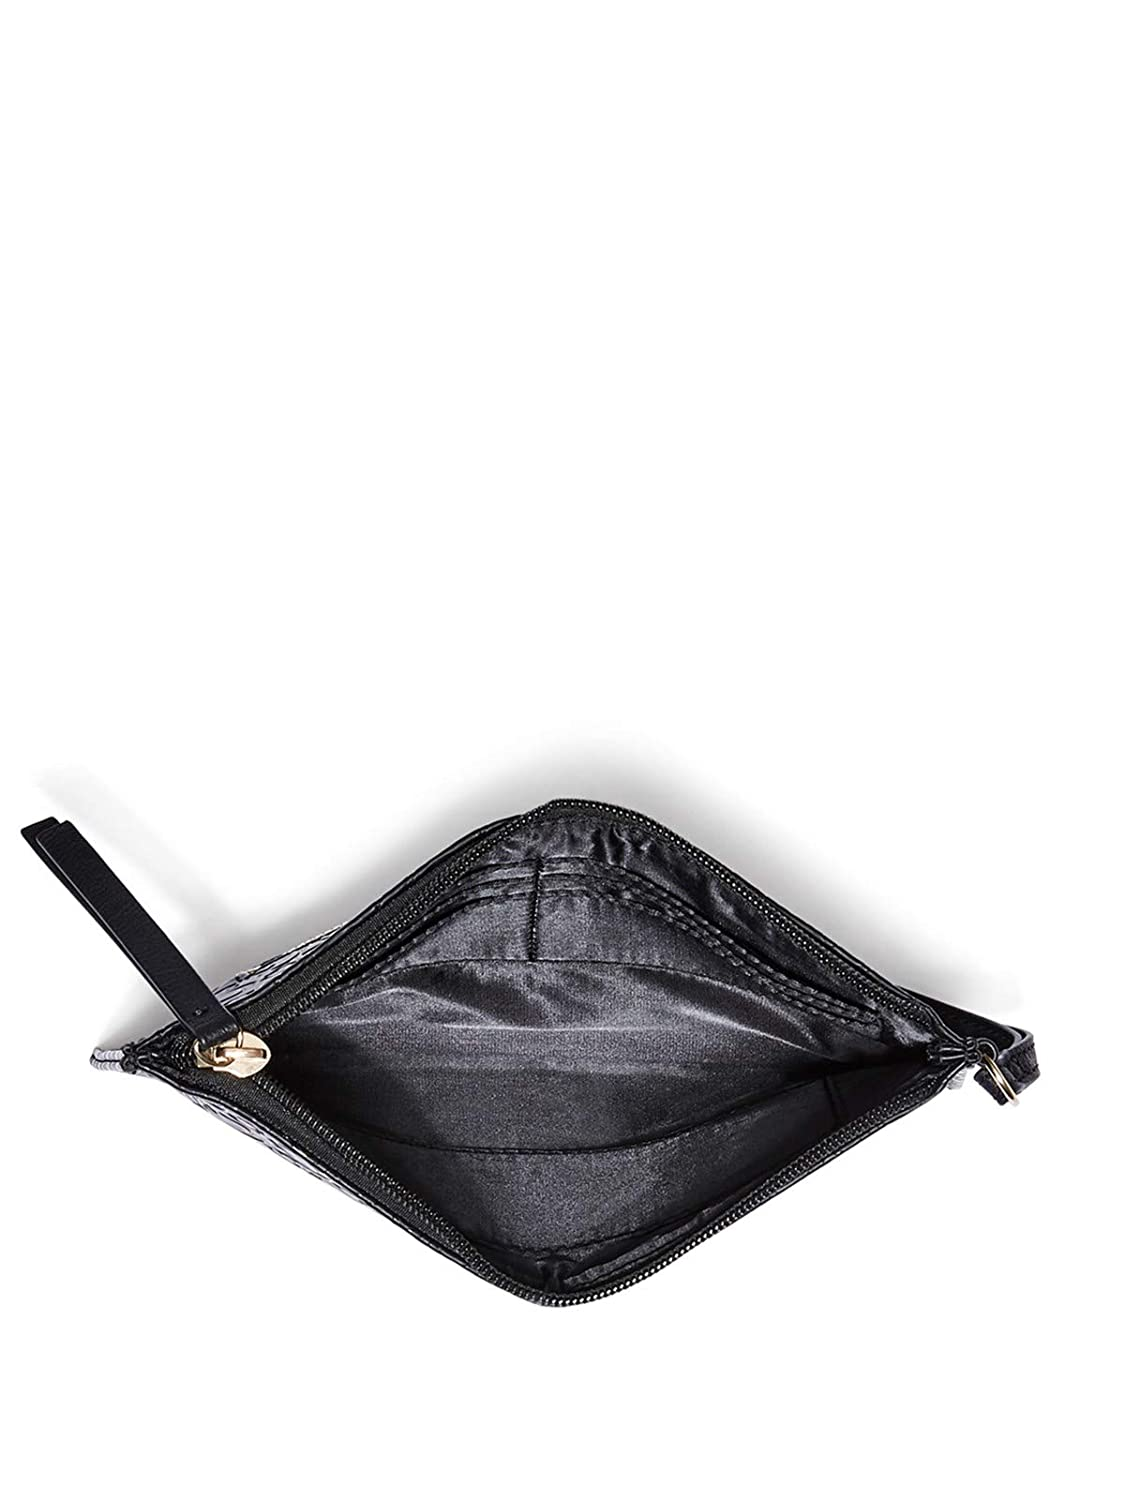 GUESS Factory Womens Cruise Striped Wristlet